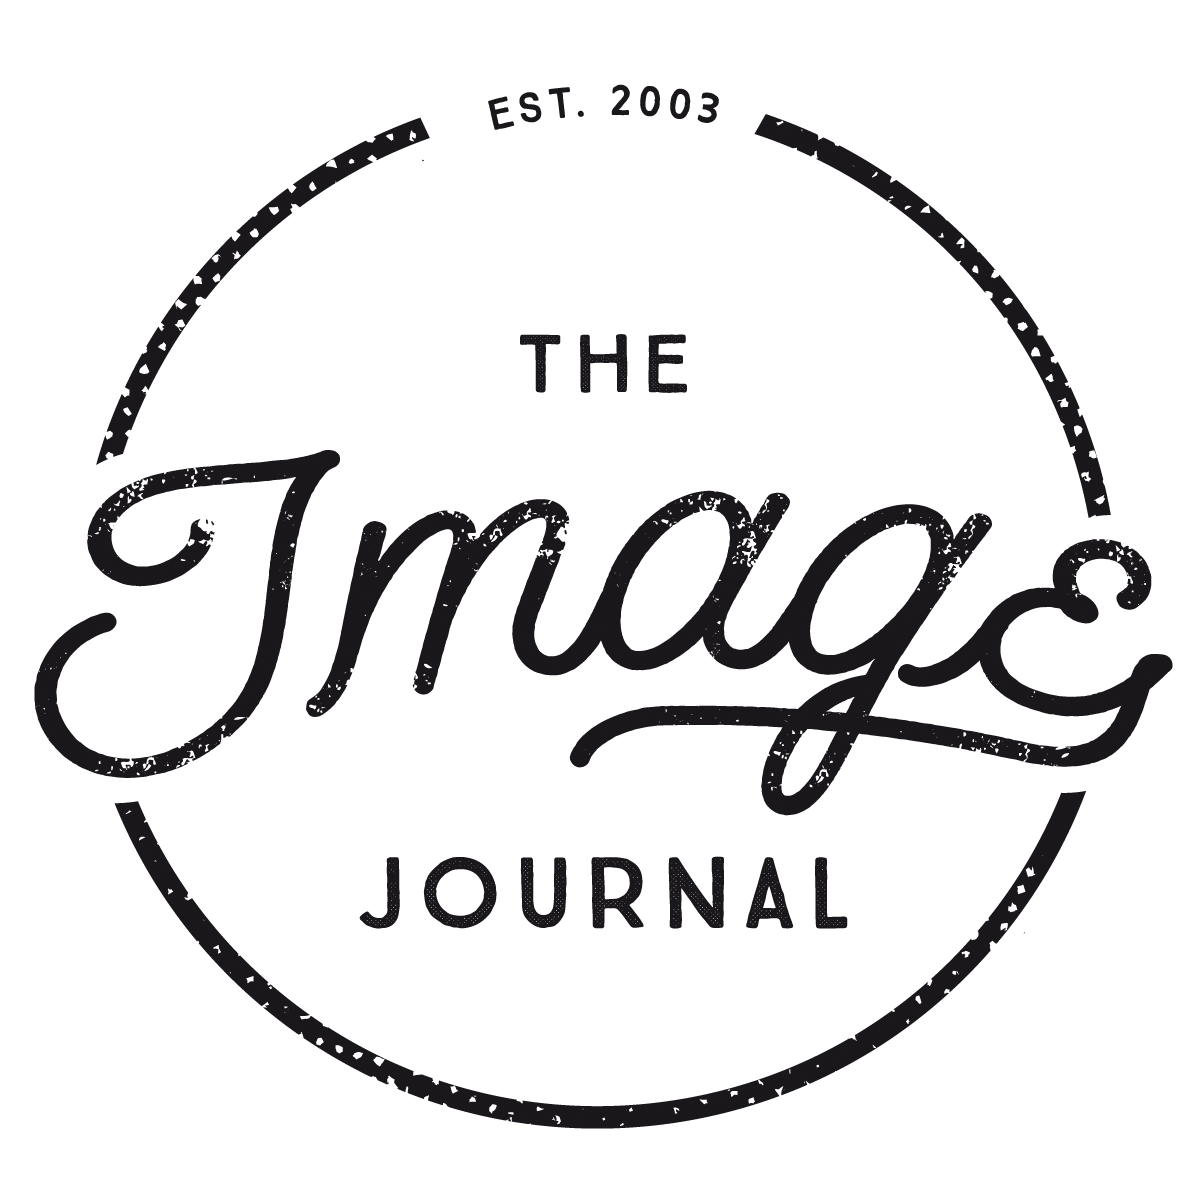 The Image Journal